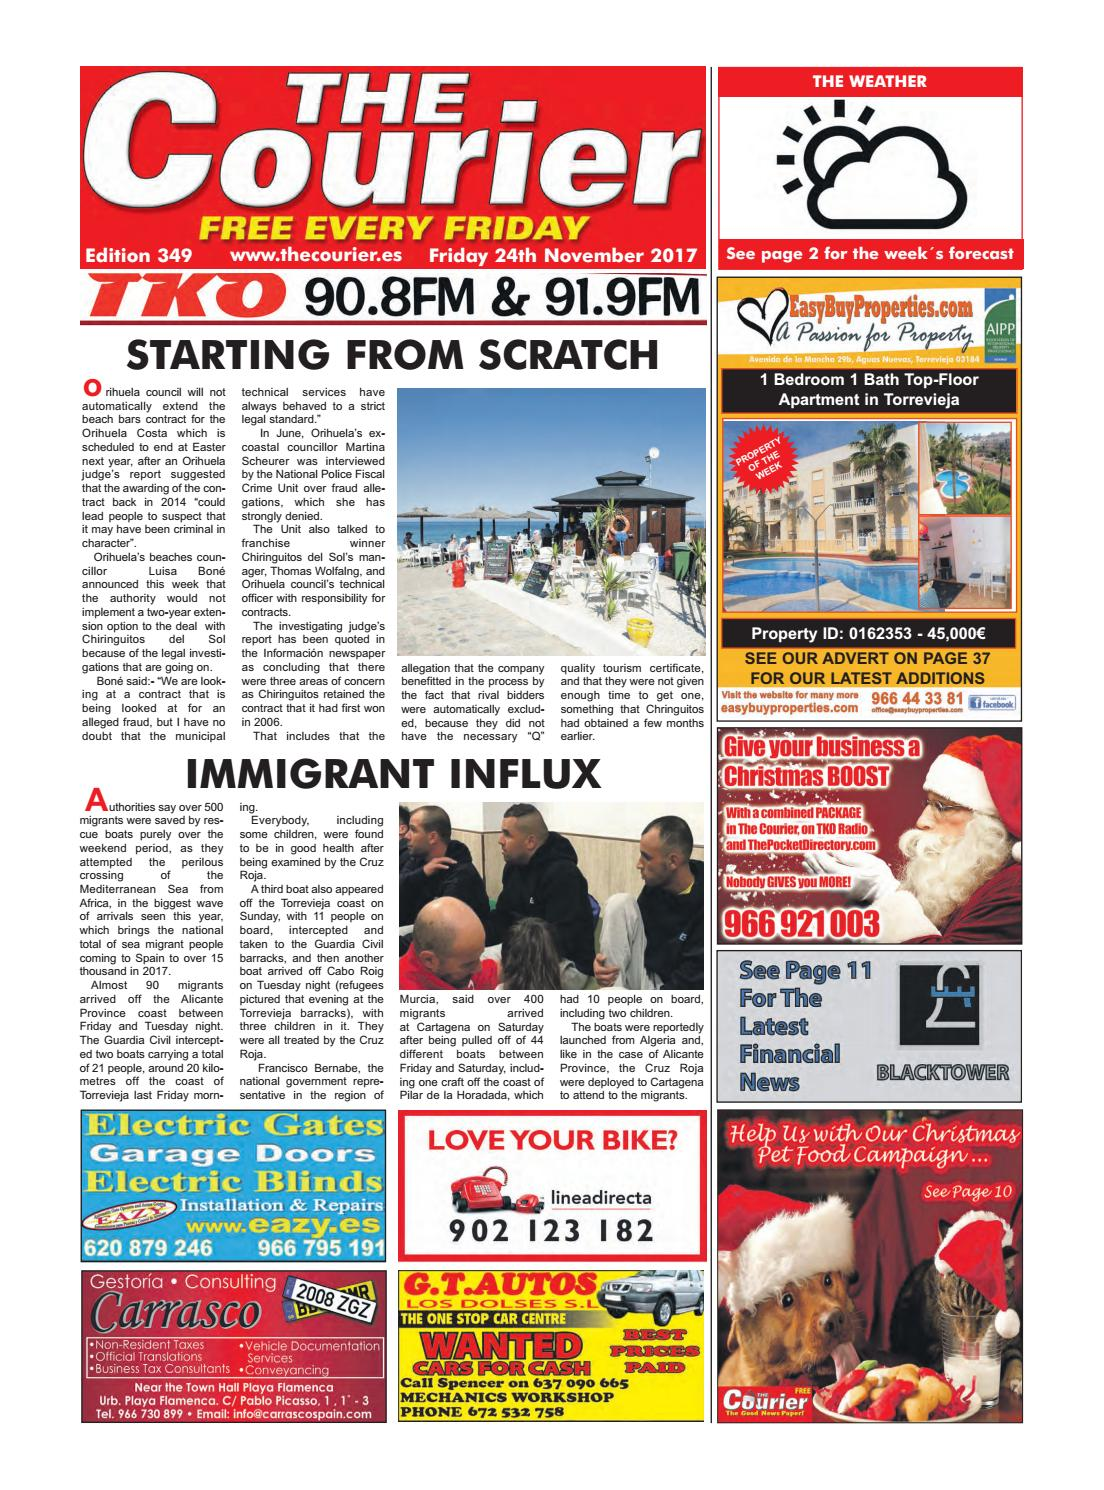 The Courier 349 By The Courier Newspaper Issuu